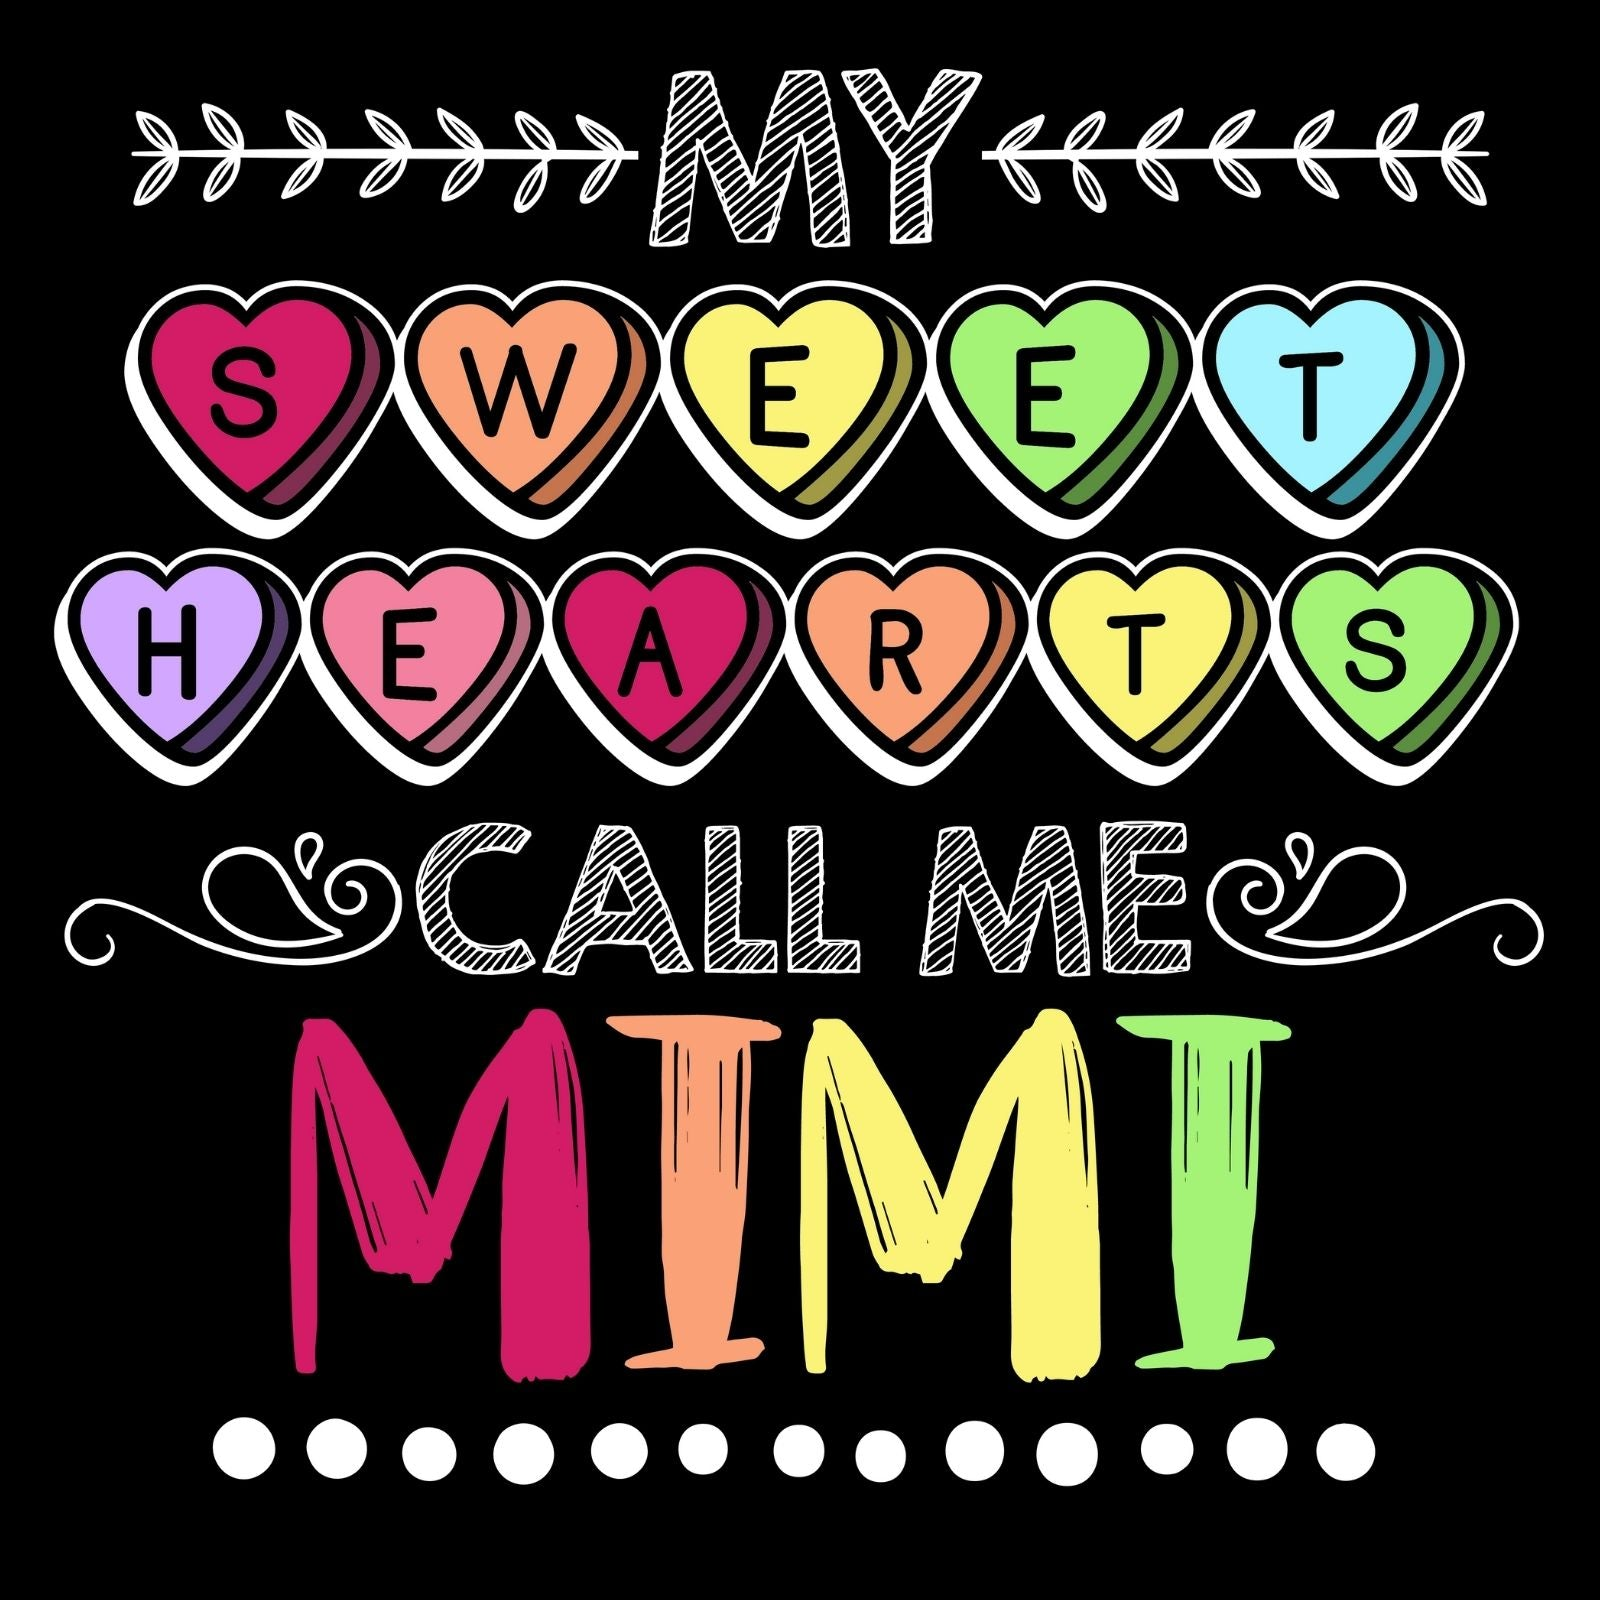 My Sweethearts Call Me Mimi - Bastard Graphics